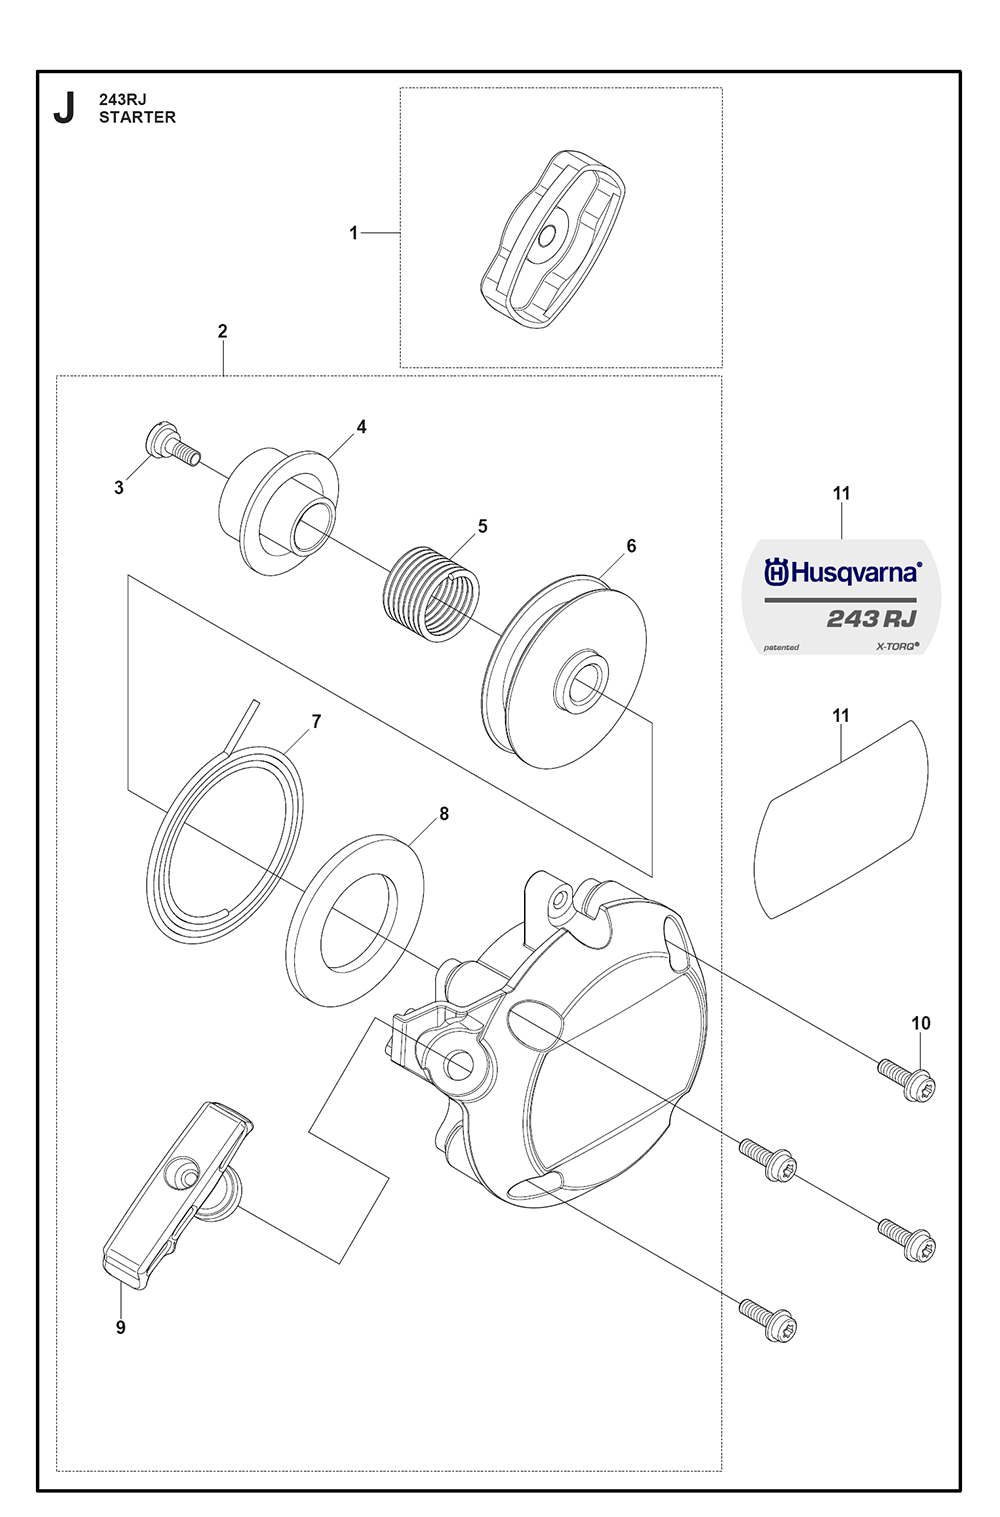 243 RJ-(25)-Husqvarna-PB-8Break Down